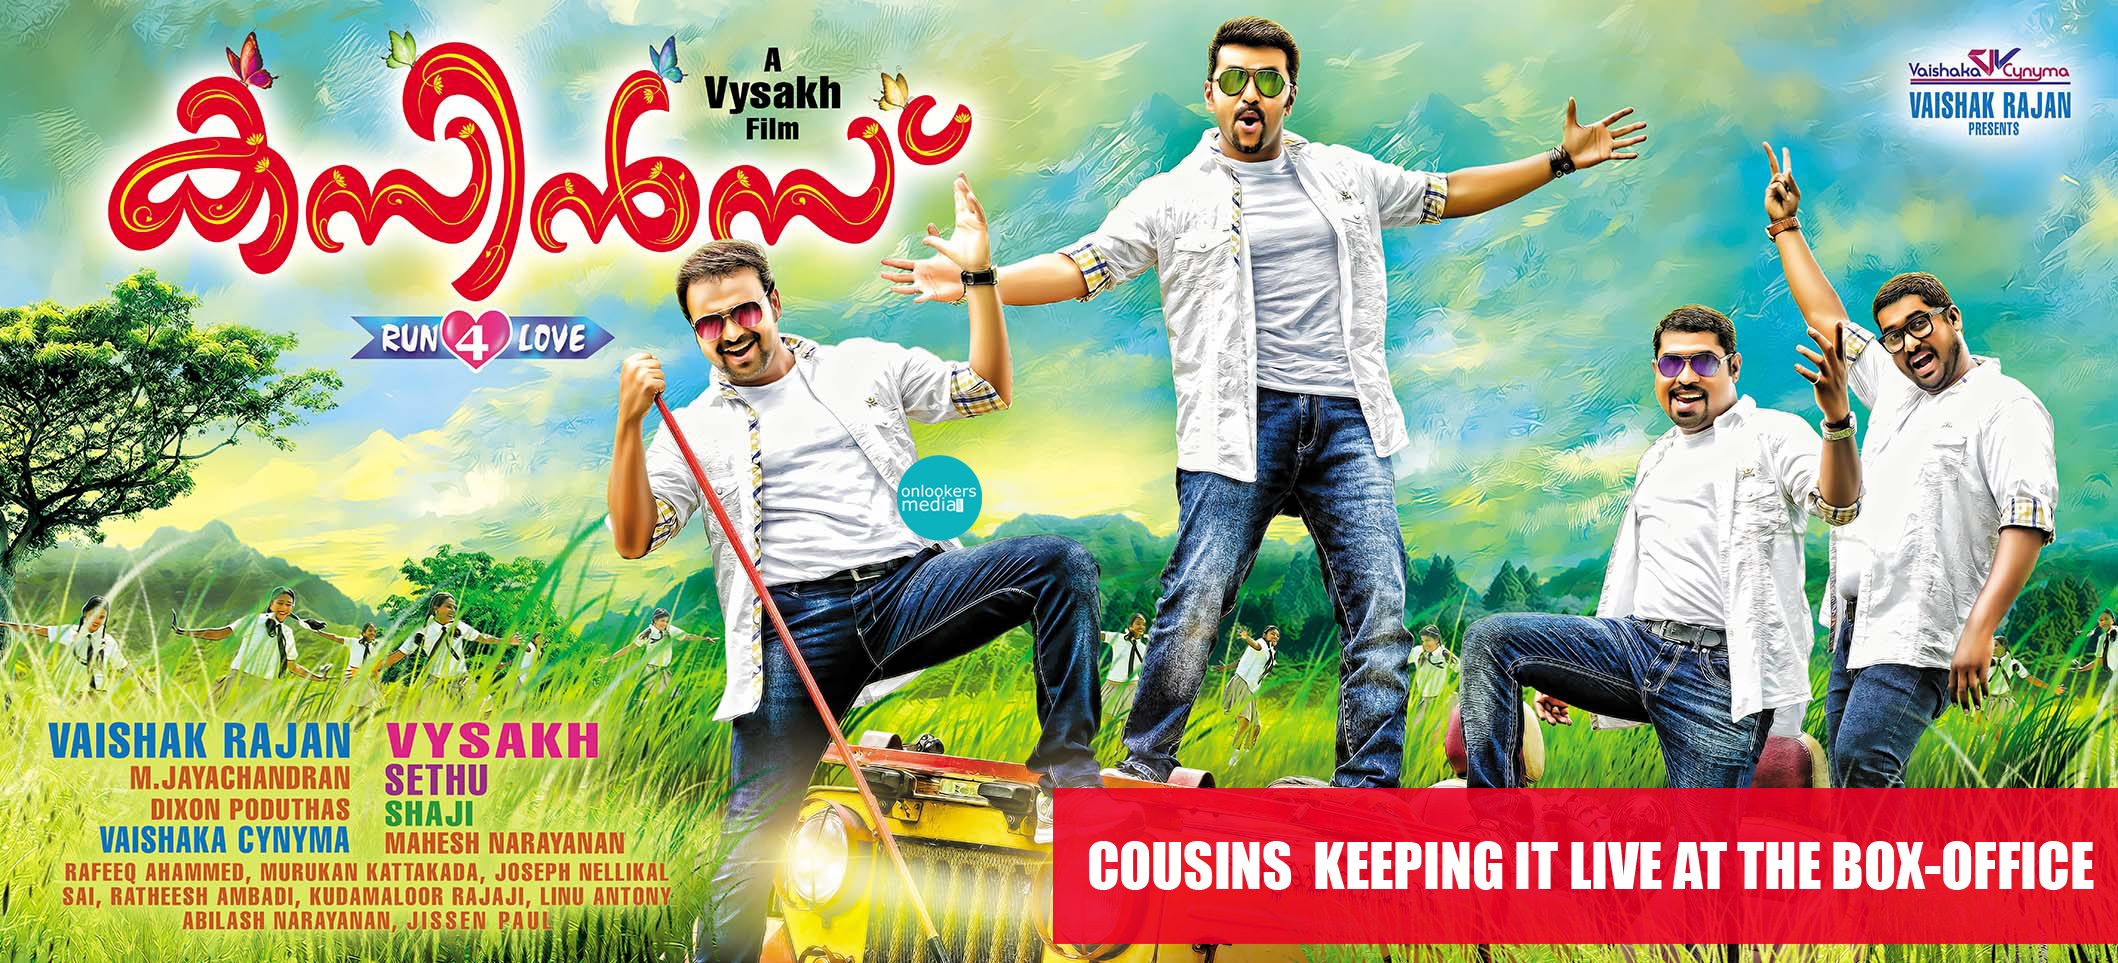 Cousins Collection Report-Rating-Review-Kunchacko Boban, Indrajith-Suraj-Onlookers Media